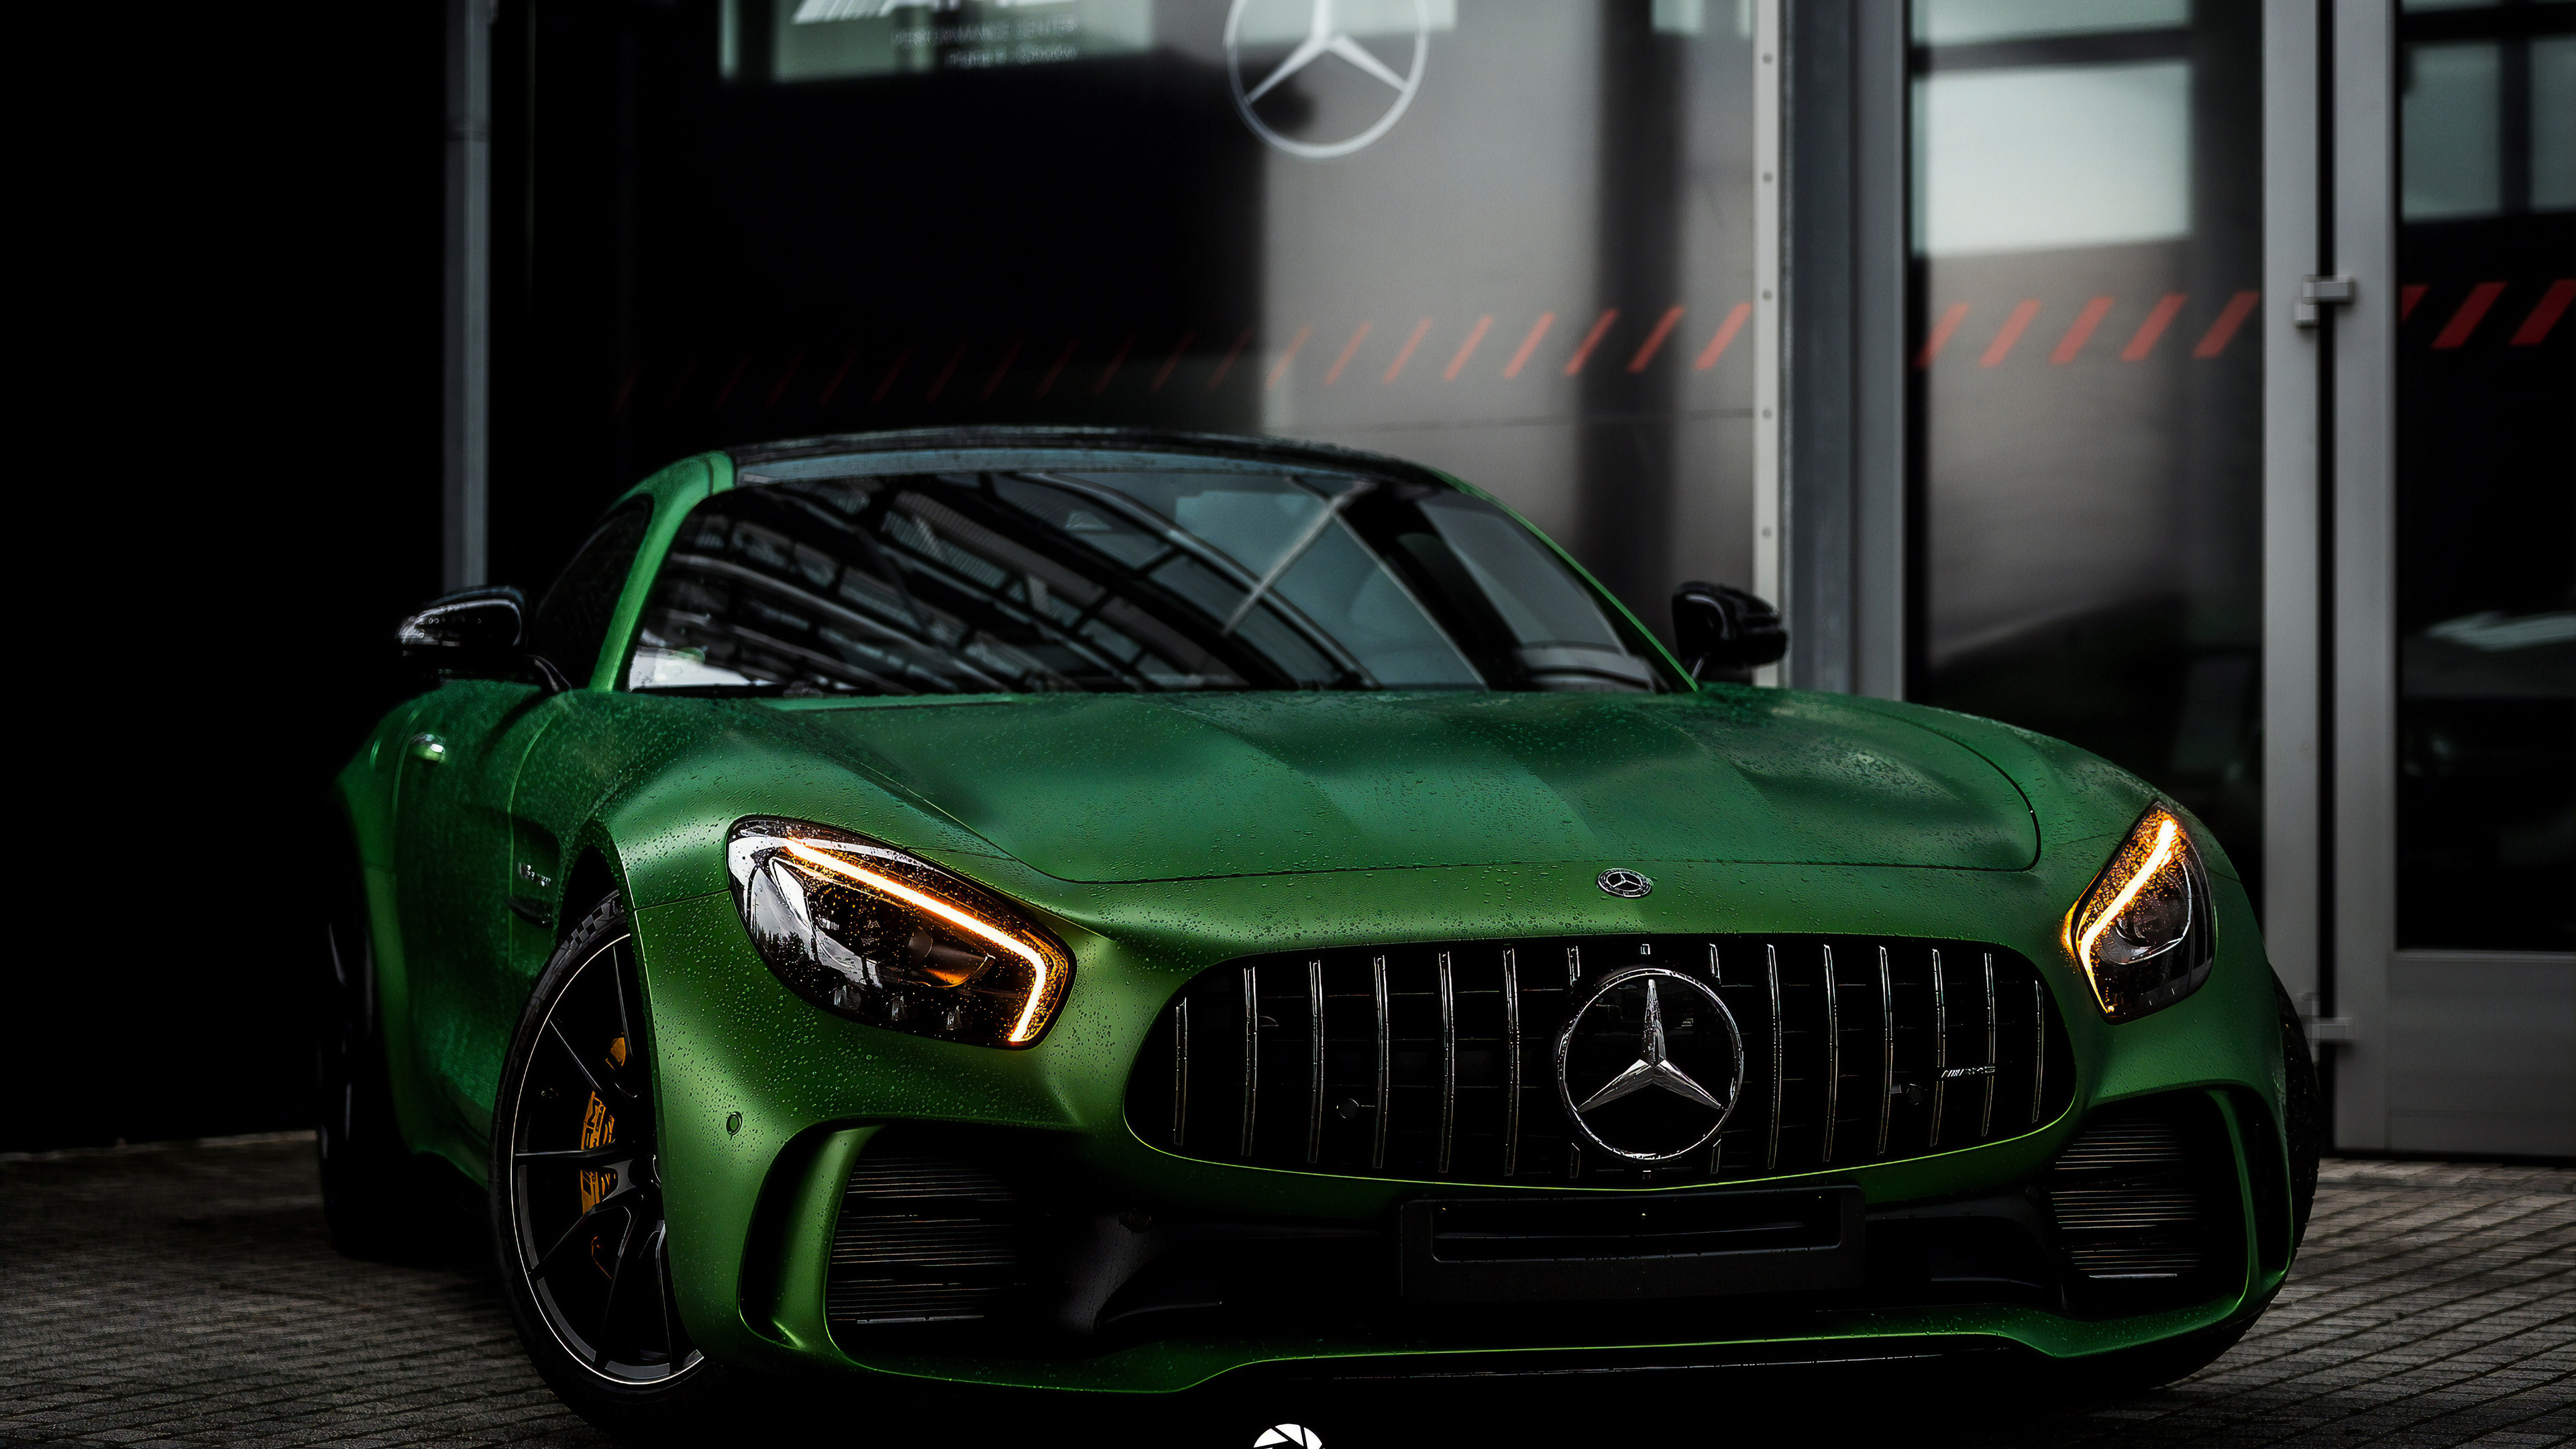 Wallpaper 4k Mercedes Amg Gt R 2019 2019 Cars Wallpapers 4k